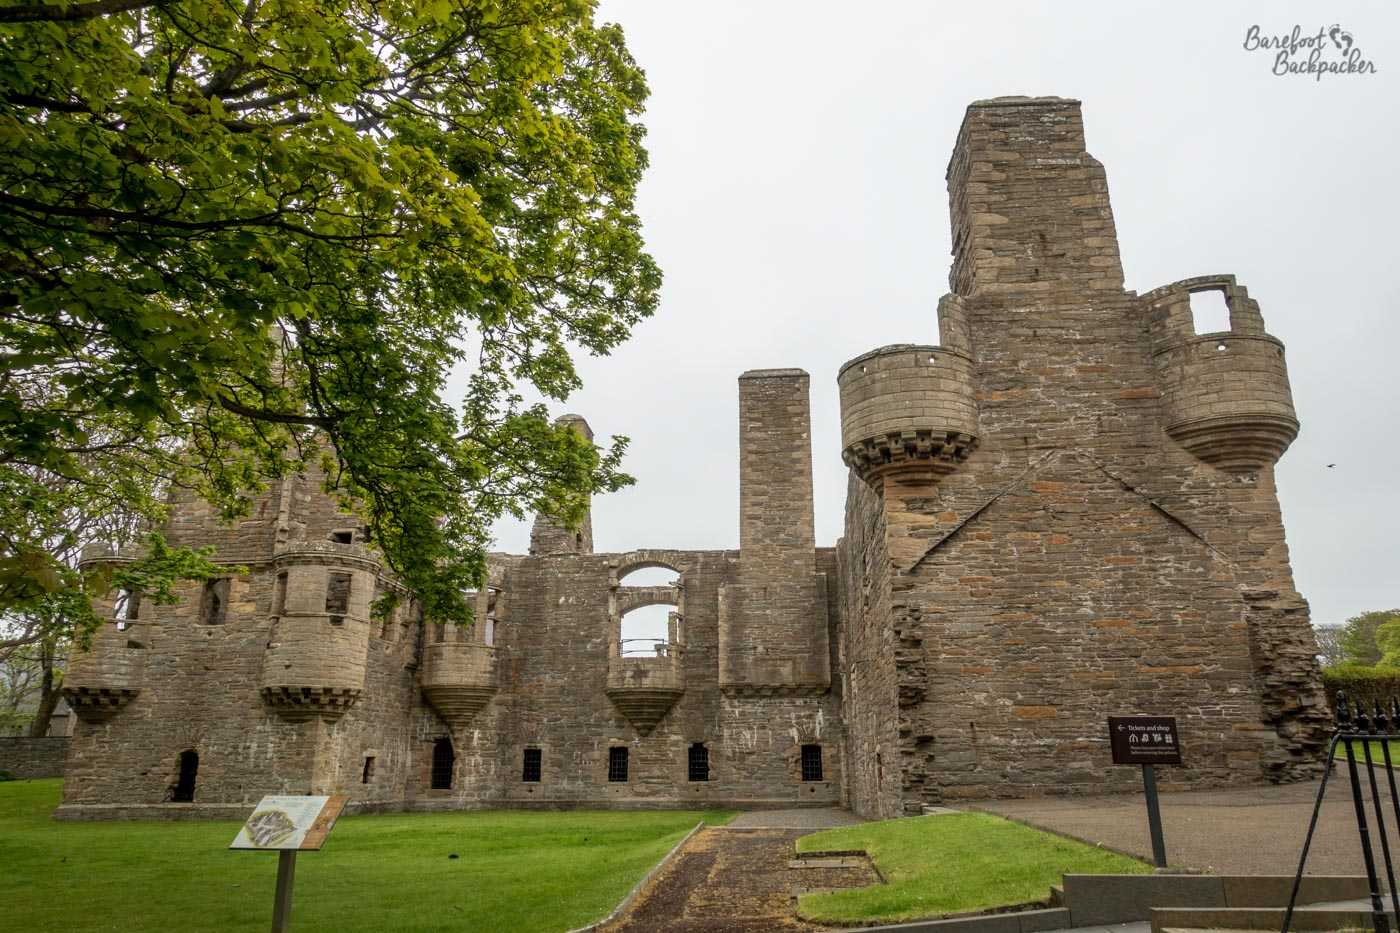 The ruins of the Earl's Palace in Kirkwall. It has the same vibe as an old stone castle, with rounded towers and a stone frontage.